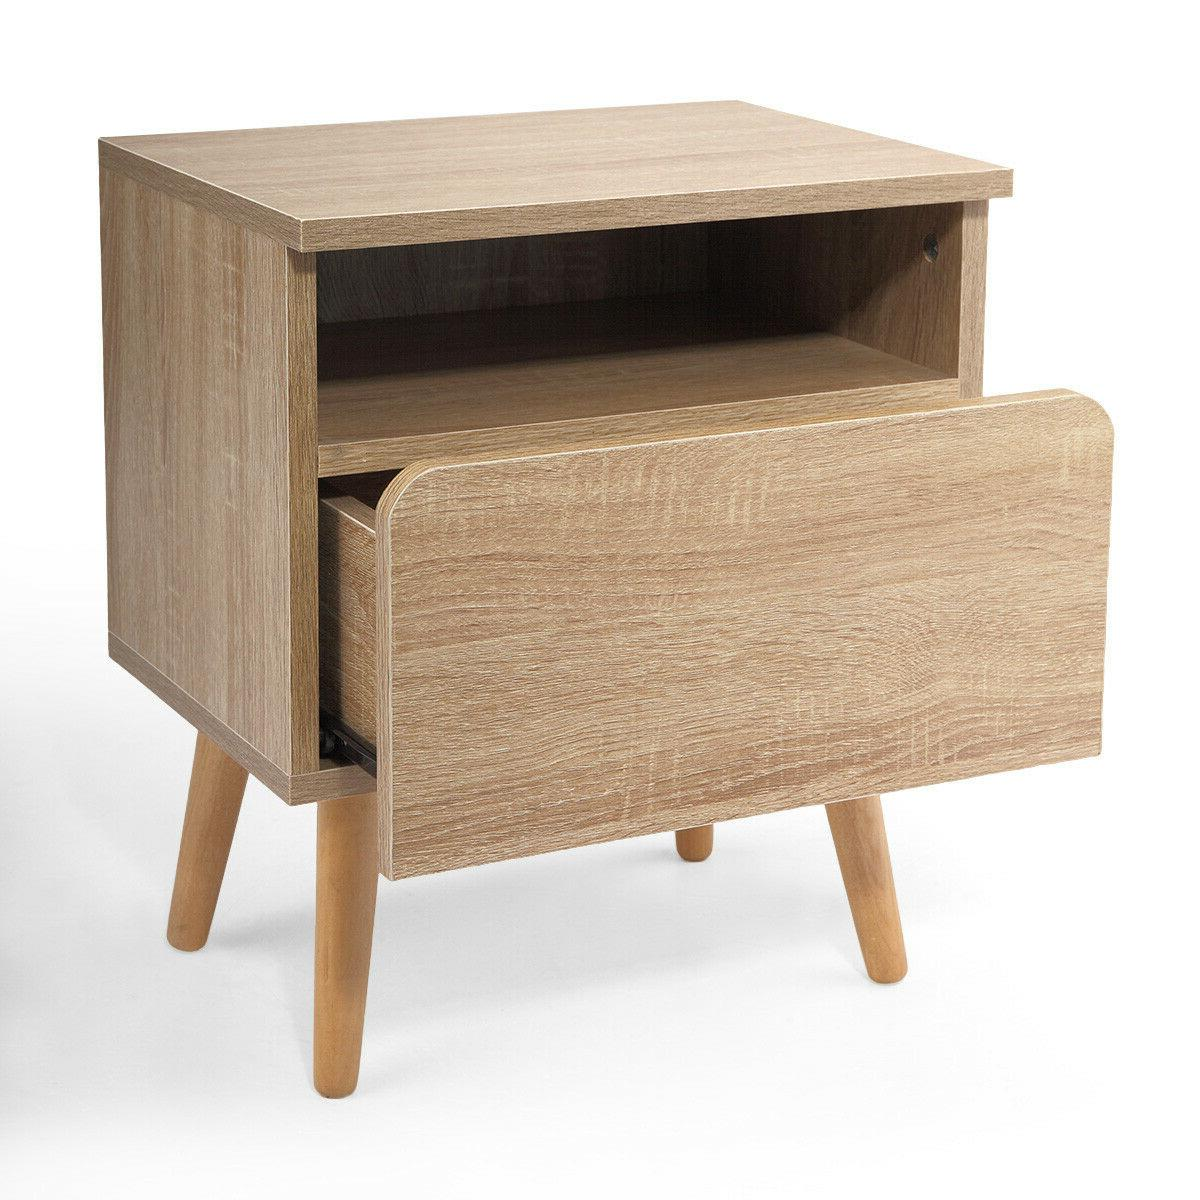 Bedroom Stand End Table 2 w/Drawer Shelf